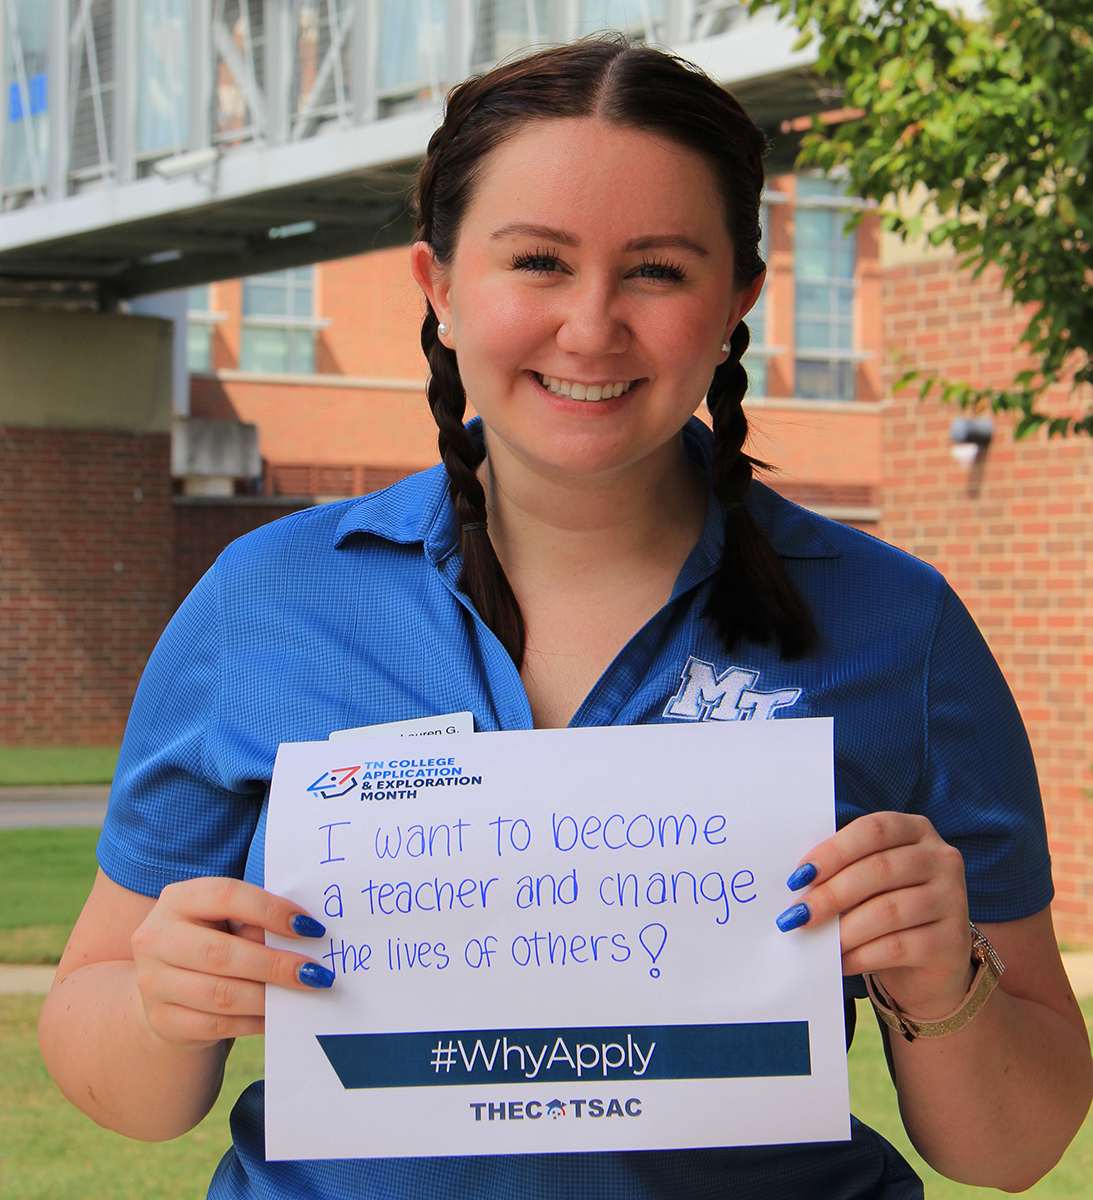 Lauren Goodman, an MTSU junior elementary education major from Murfreesboro, promotes the #WhyApply effort during the fall college application season. MTSU will waive application fees until 11:55 p.m. Sunday, Sept. 26. MTSU staff will assist students attending the Saturday, Sept. 25, True Blue Preview event with the application process — and waive the application fee. (MTSU photo by Katie Roberts)